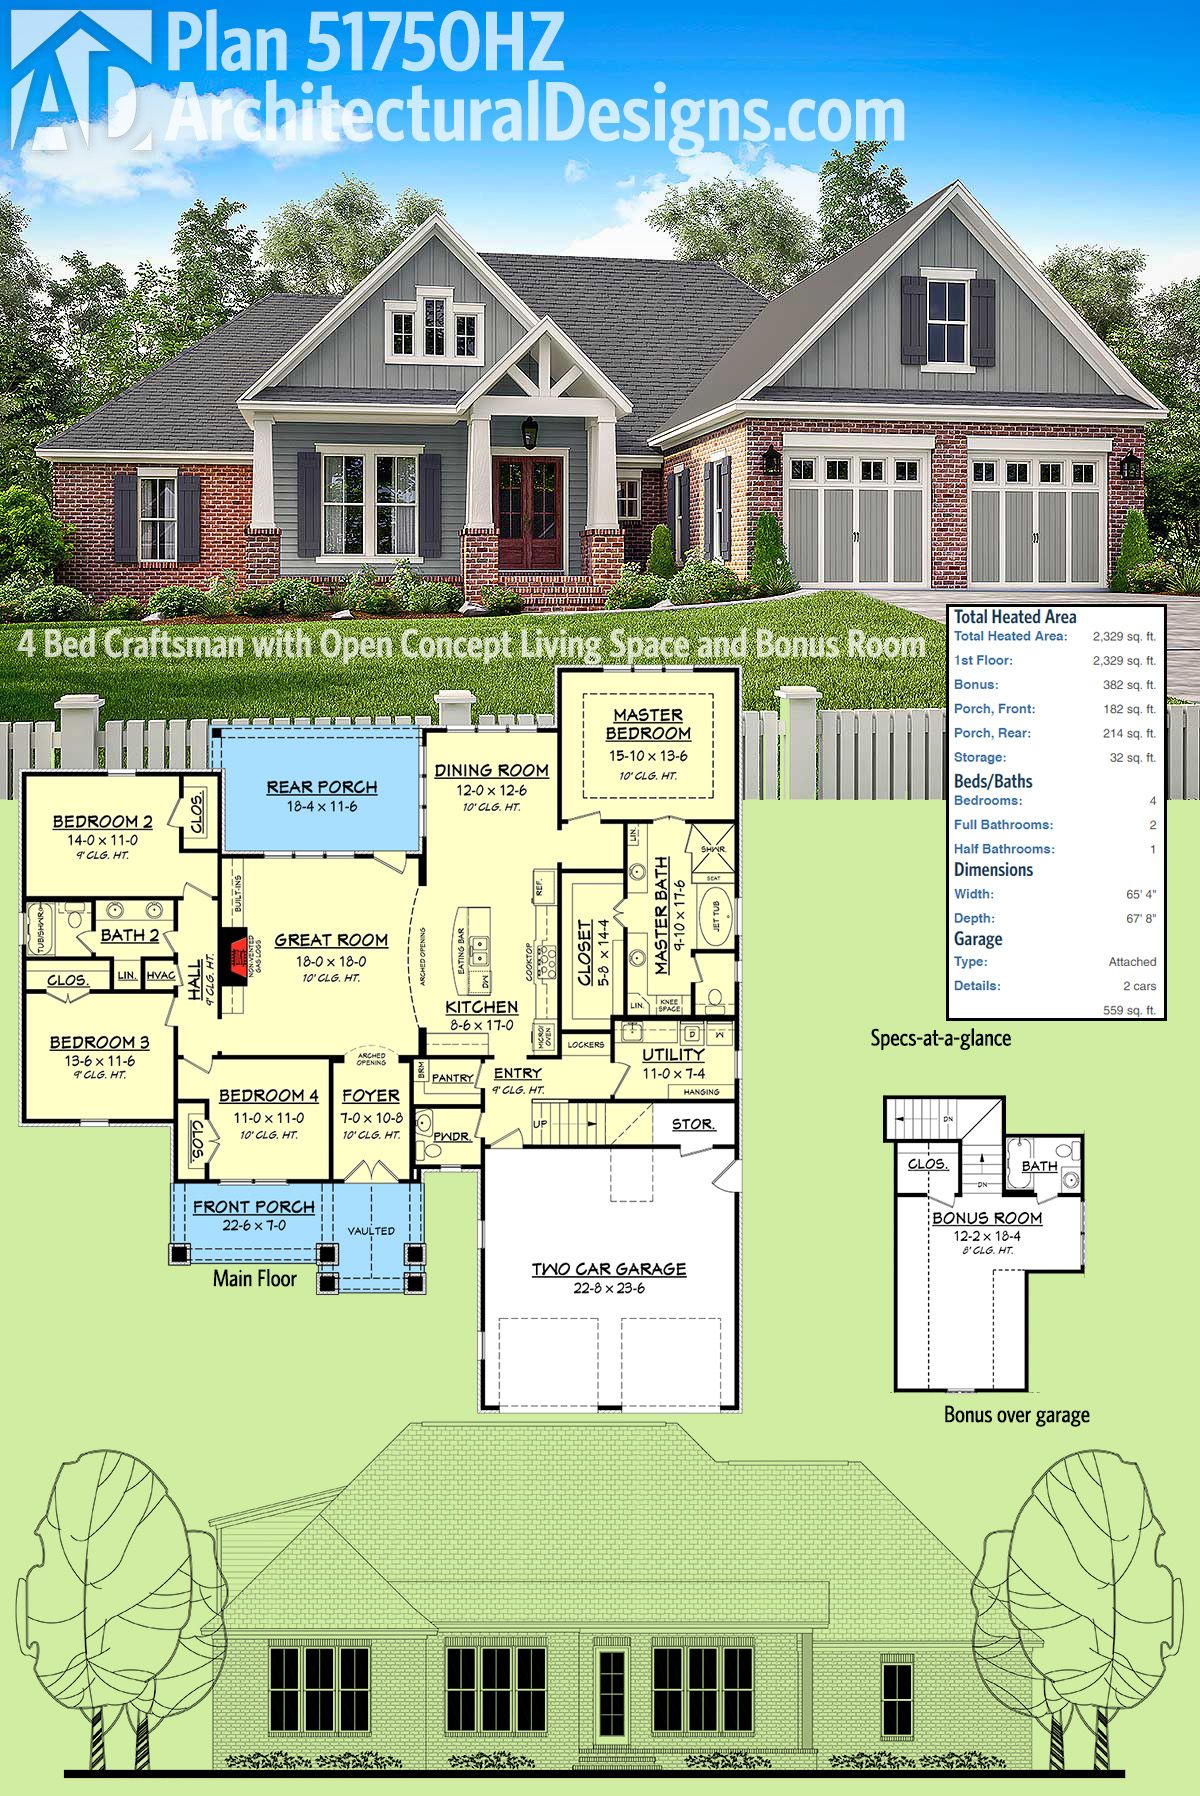 House Designs Photos Of Models Building Exterior Design: Plan 51750HZ: 4 Bed Craftsman With Open Concept Living